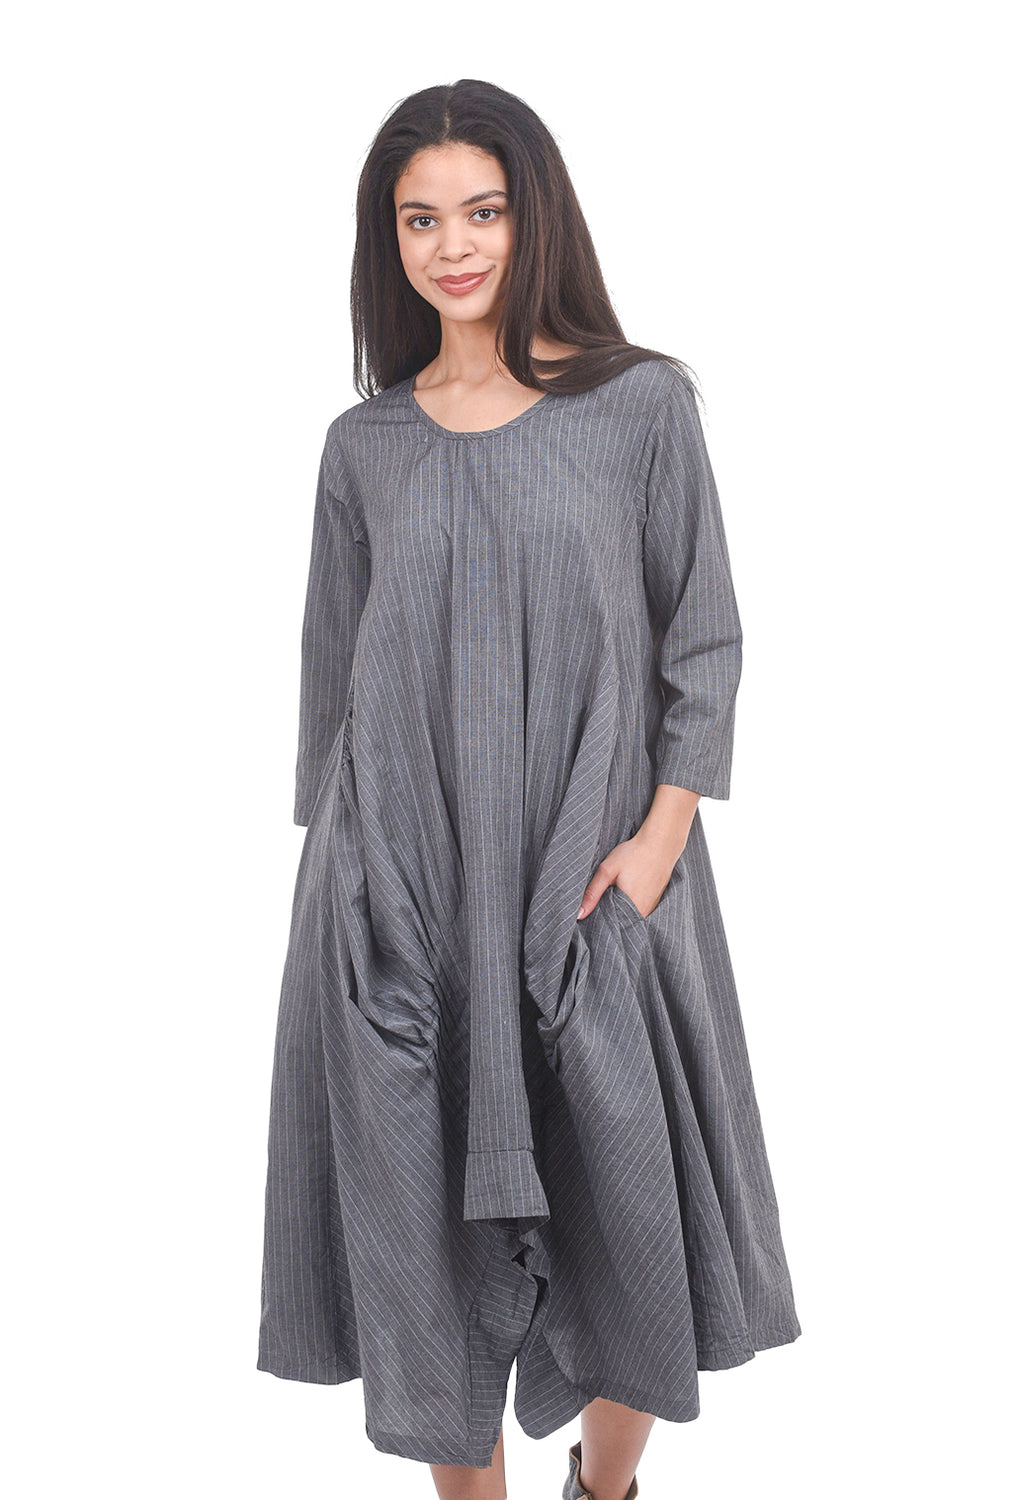 Tulip Lexi Dress, Gray Rockefeller Stripe